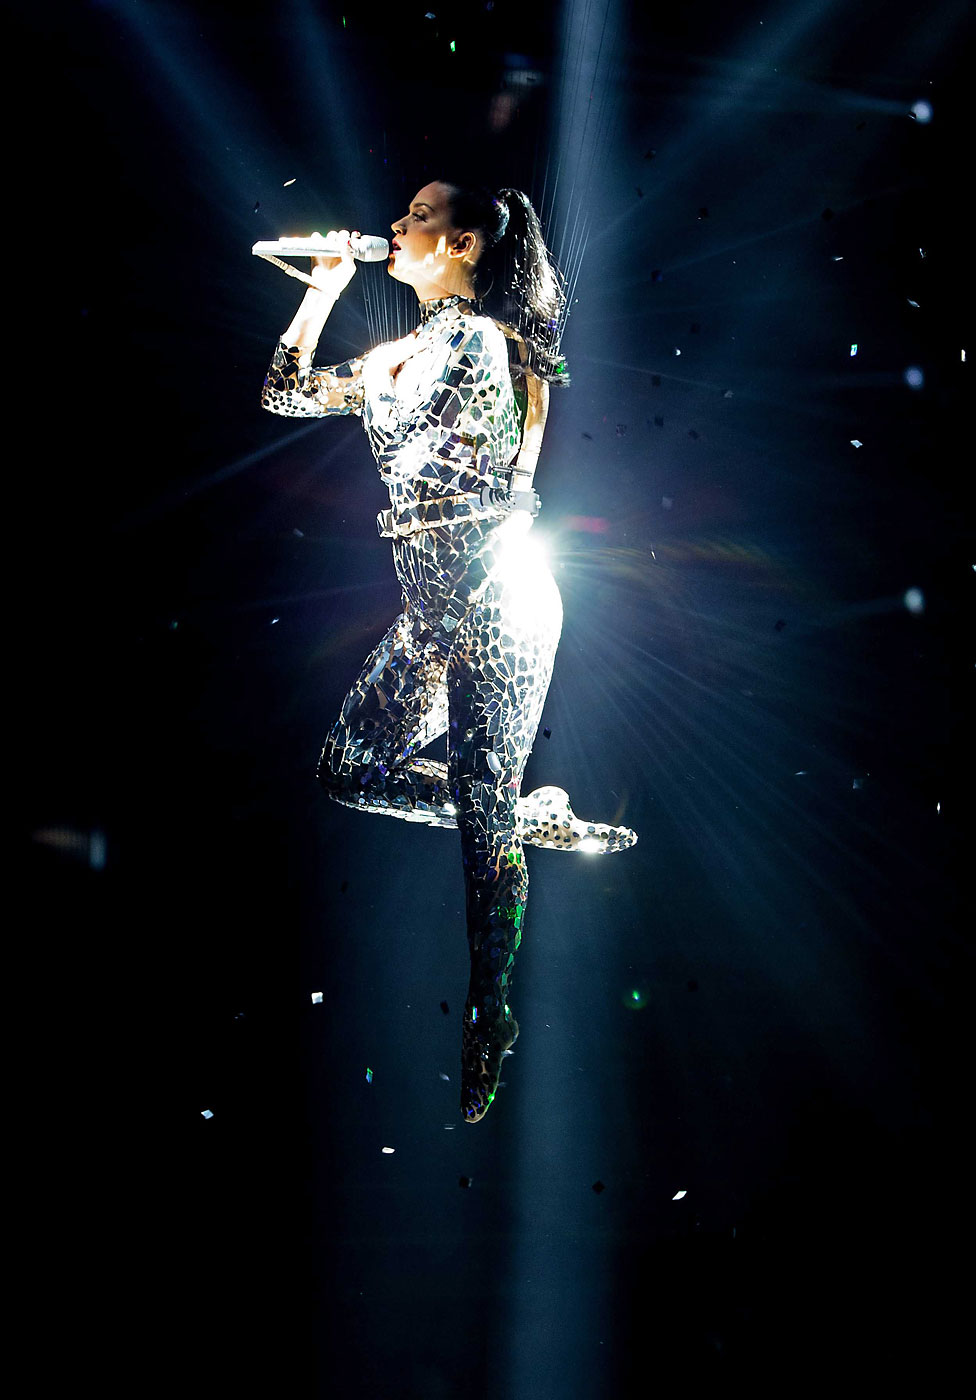 Katy Perry performs at the 2013 MTV Europe Music Awards held at the Ziggo Dome in Amsterdam, The Netherlands, November 10, 2013.